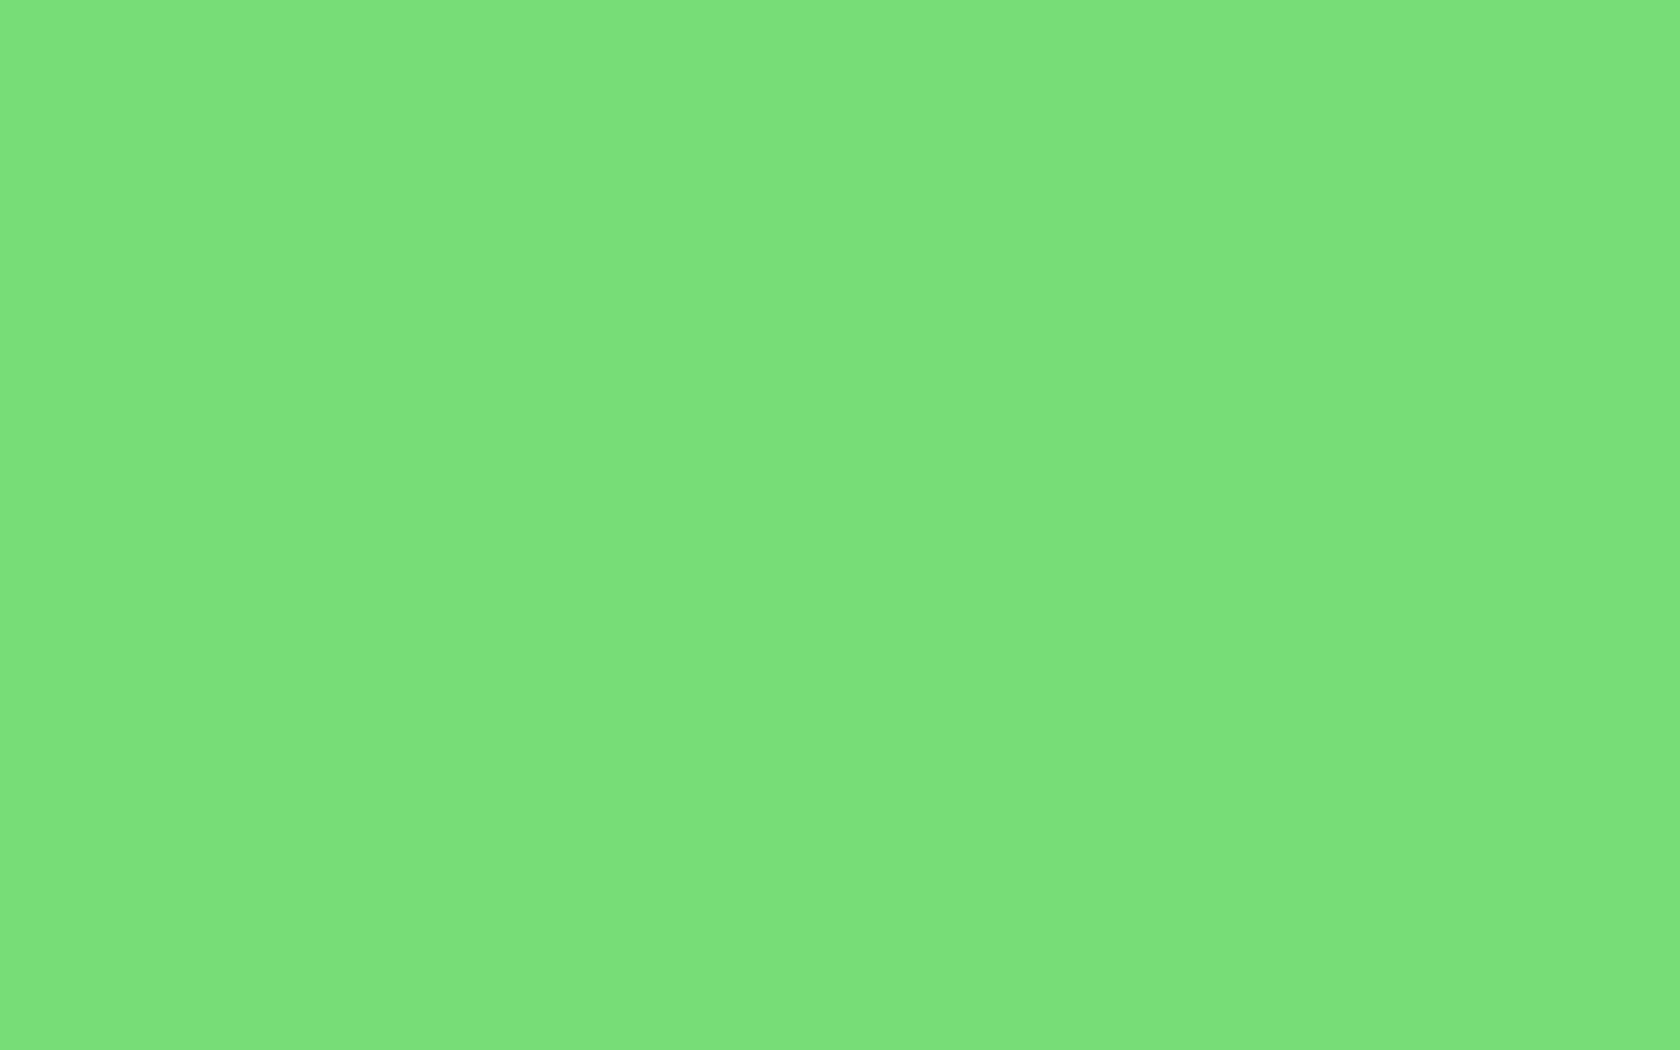 1680x1050 Pastel Green Solid Color Background